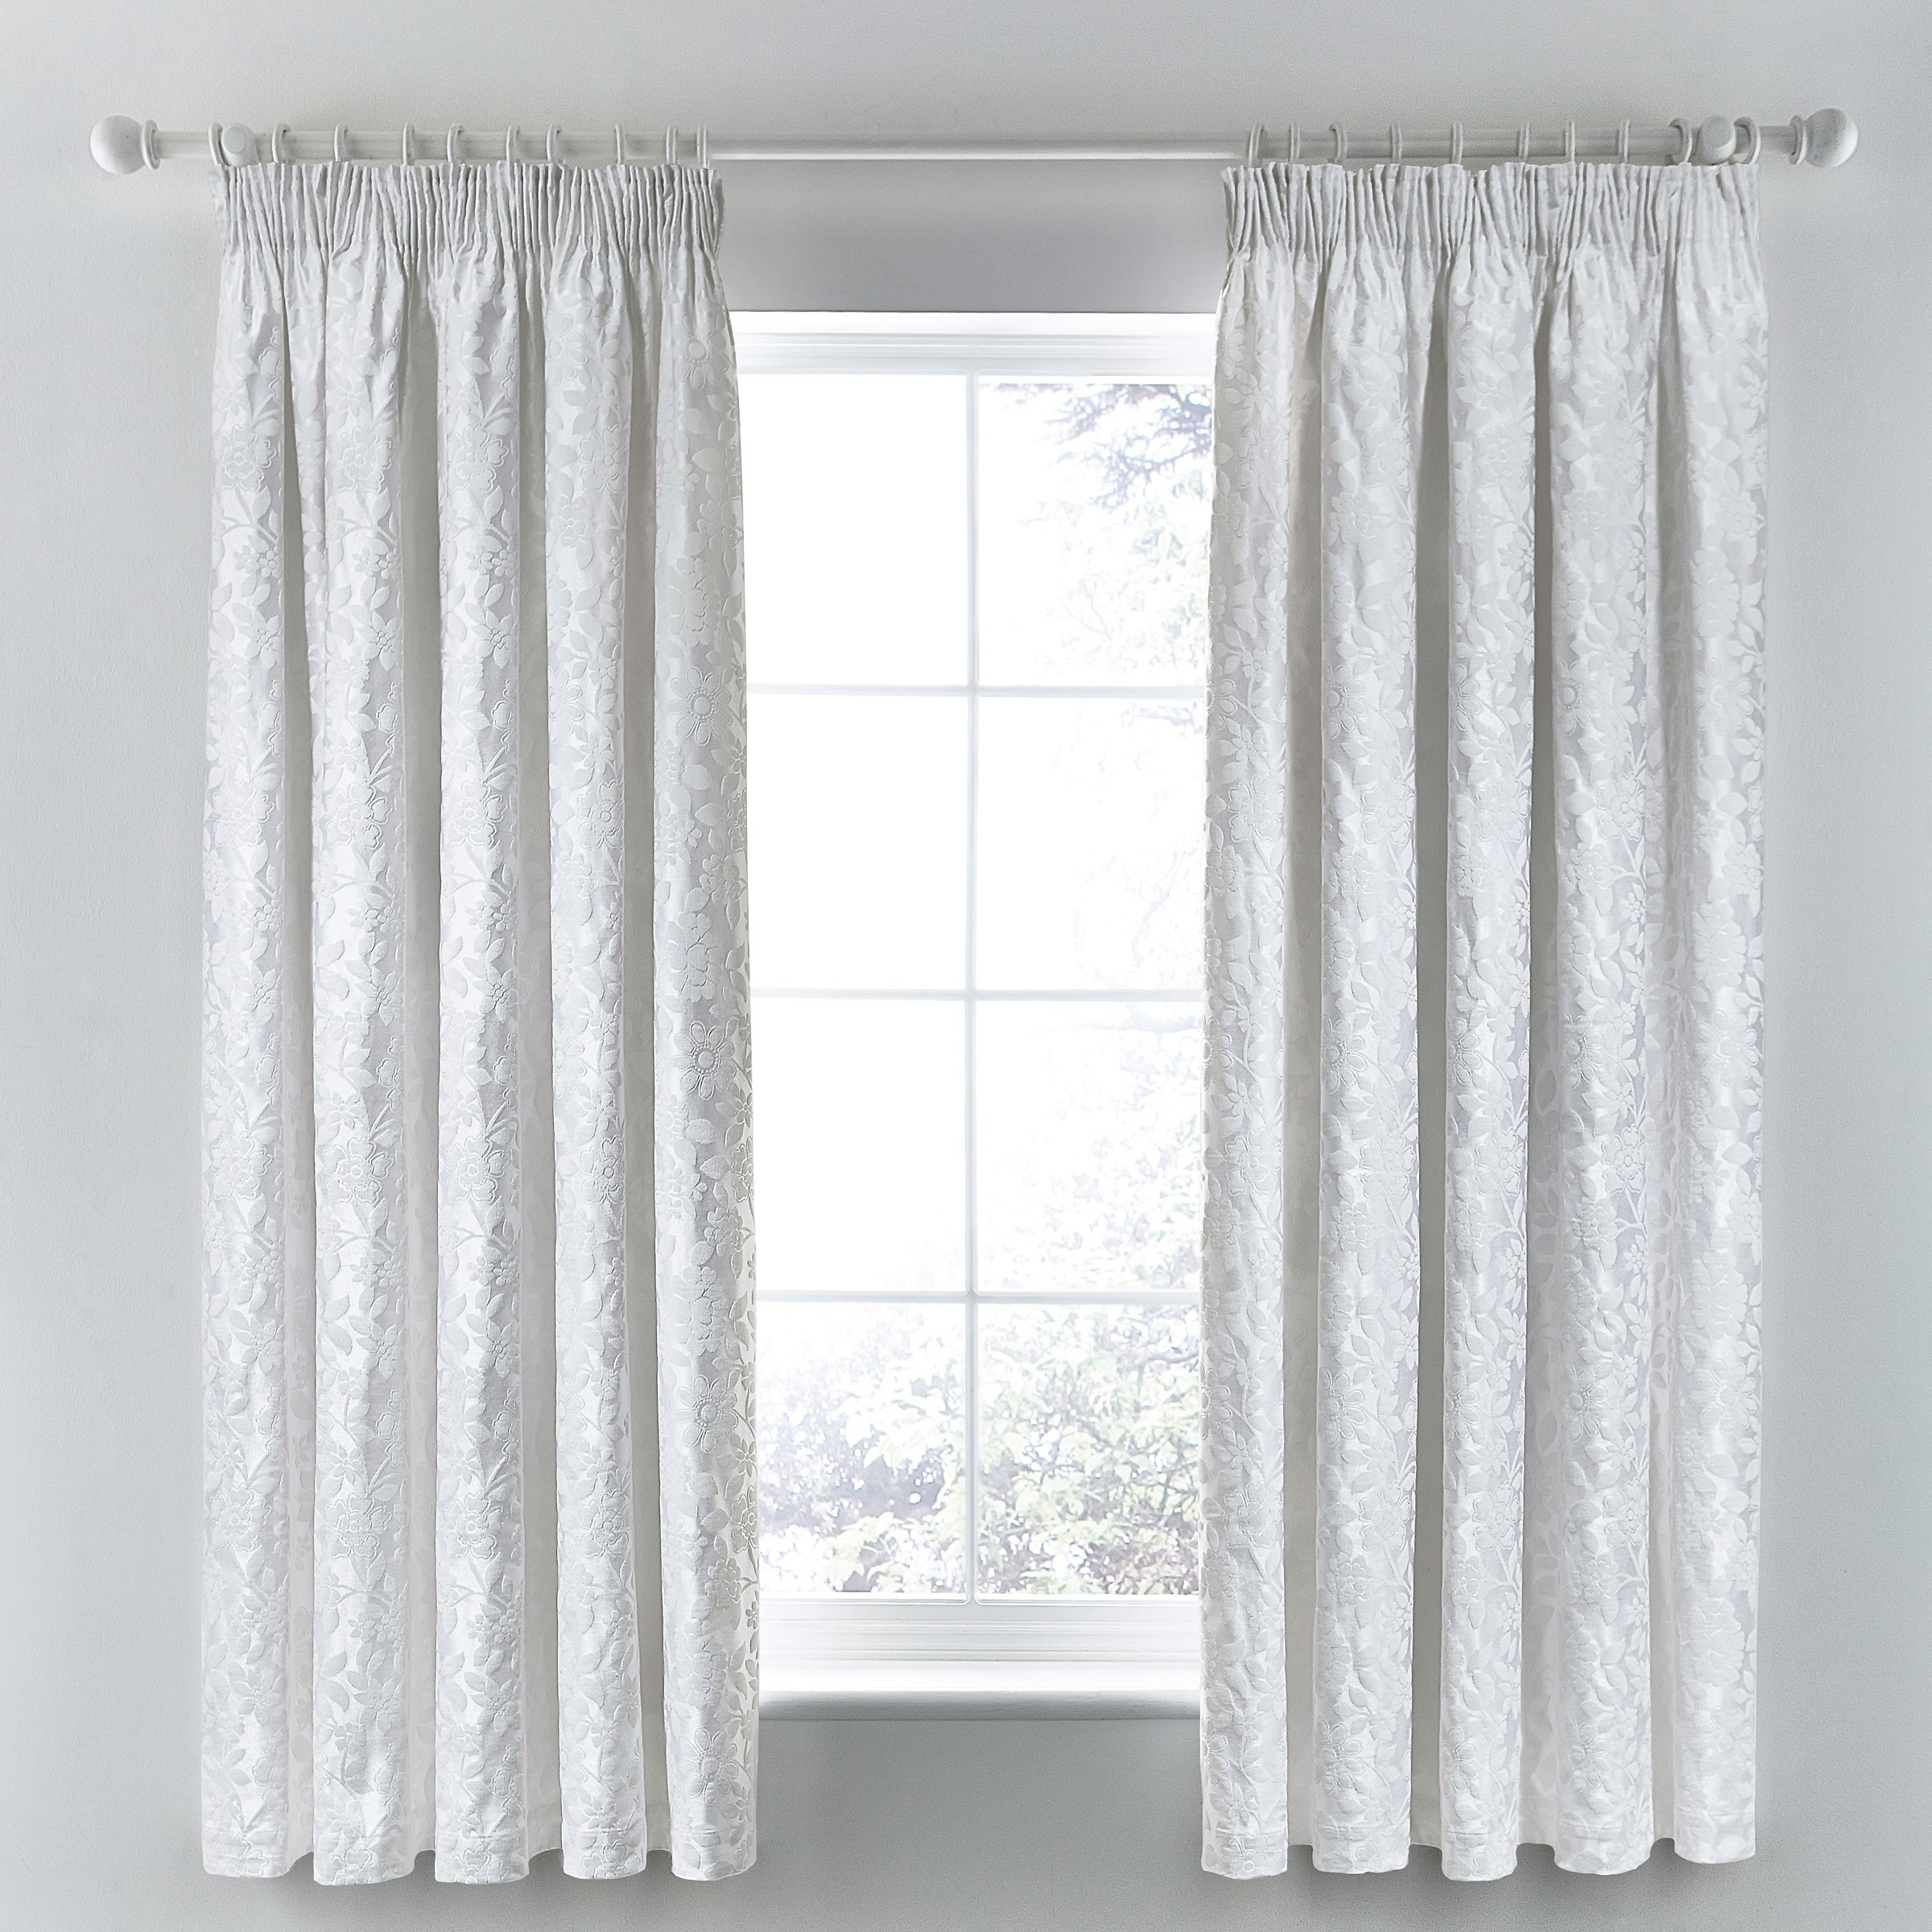 White Curtains Ikea Ritva Pleated Curtains White Curtains And With Regard To Luxury White Curtains (Image 12 of 15)